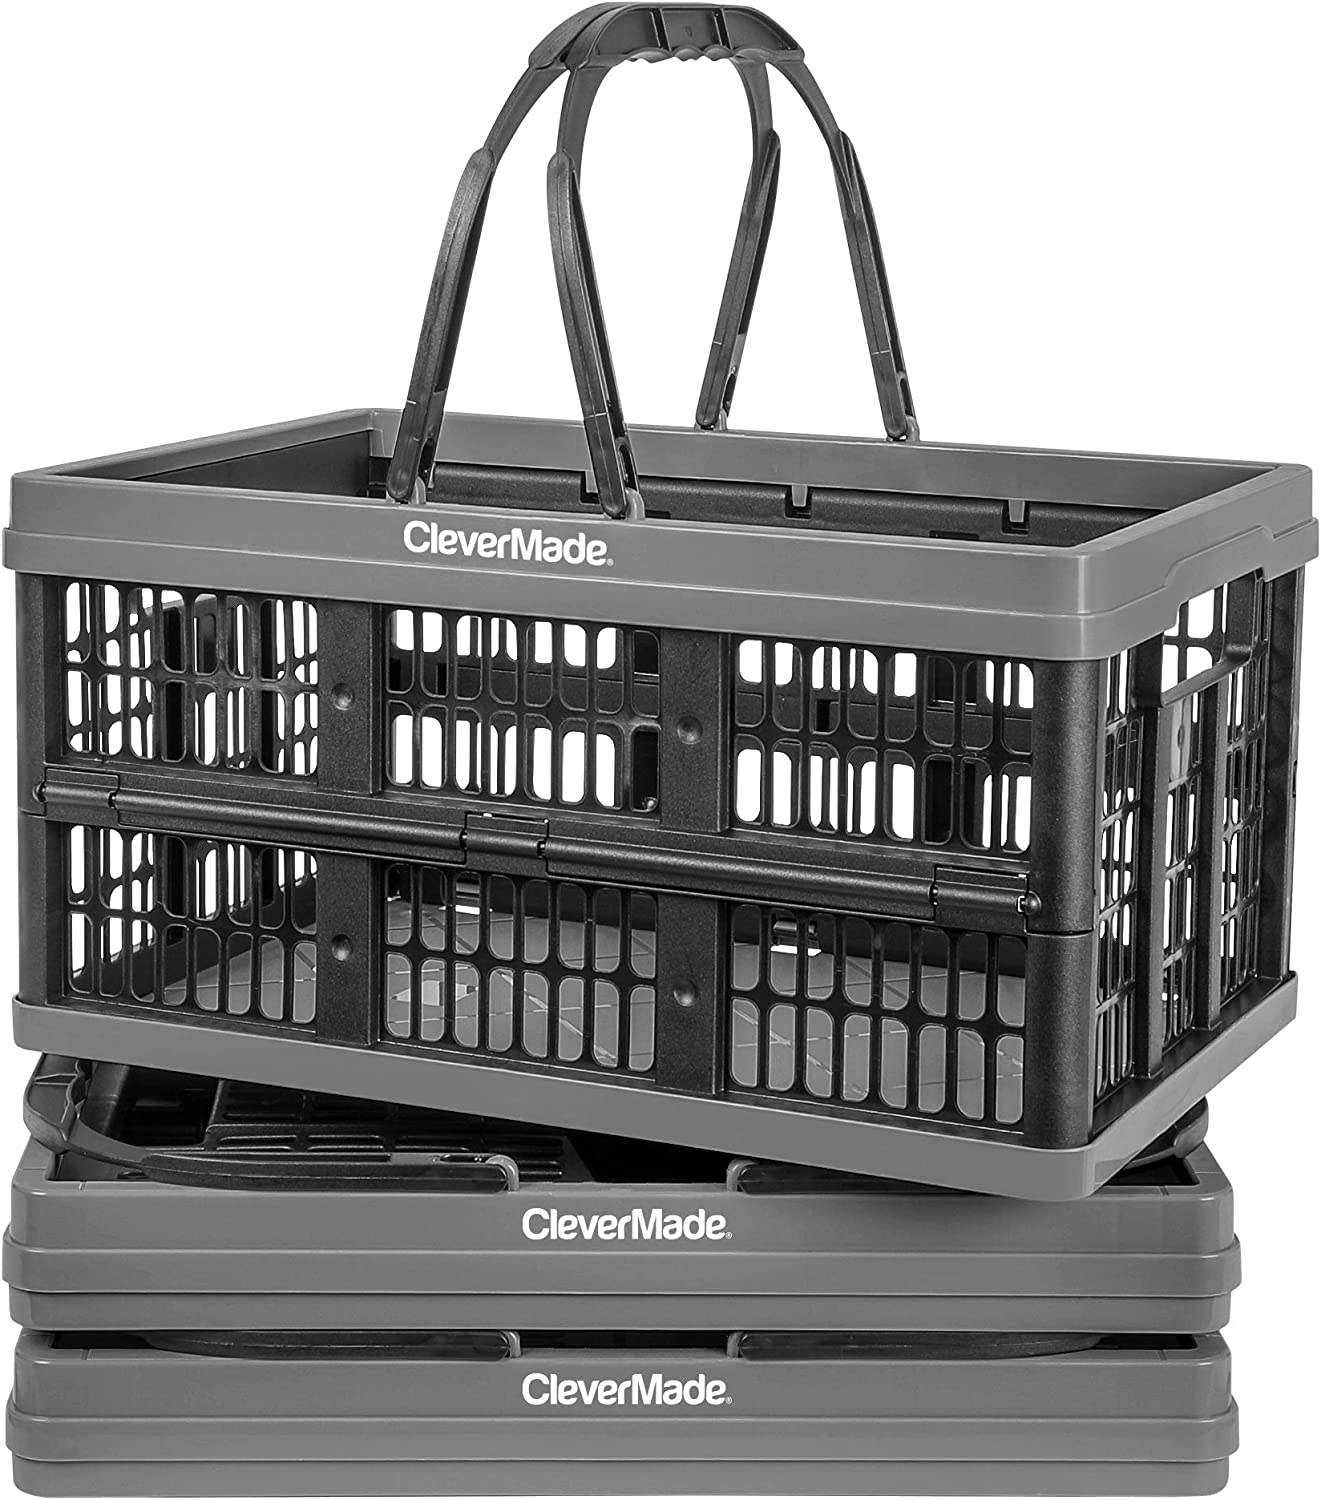 CleverMade Collapsible Plastic Grocery Shopping Baskets: Small Folding Stackable Storage Containers/Bins with Handles, Pack of 3, Graphite/Black